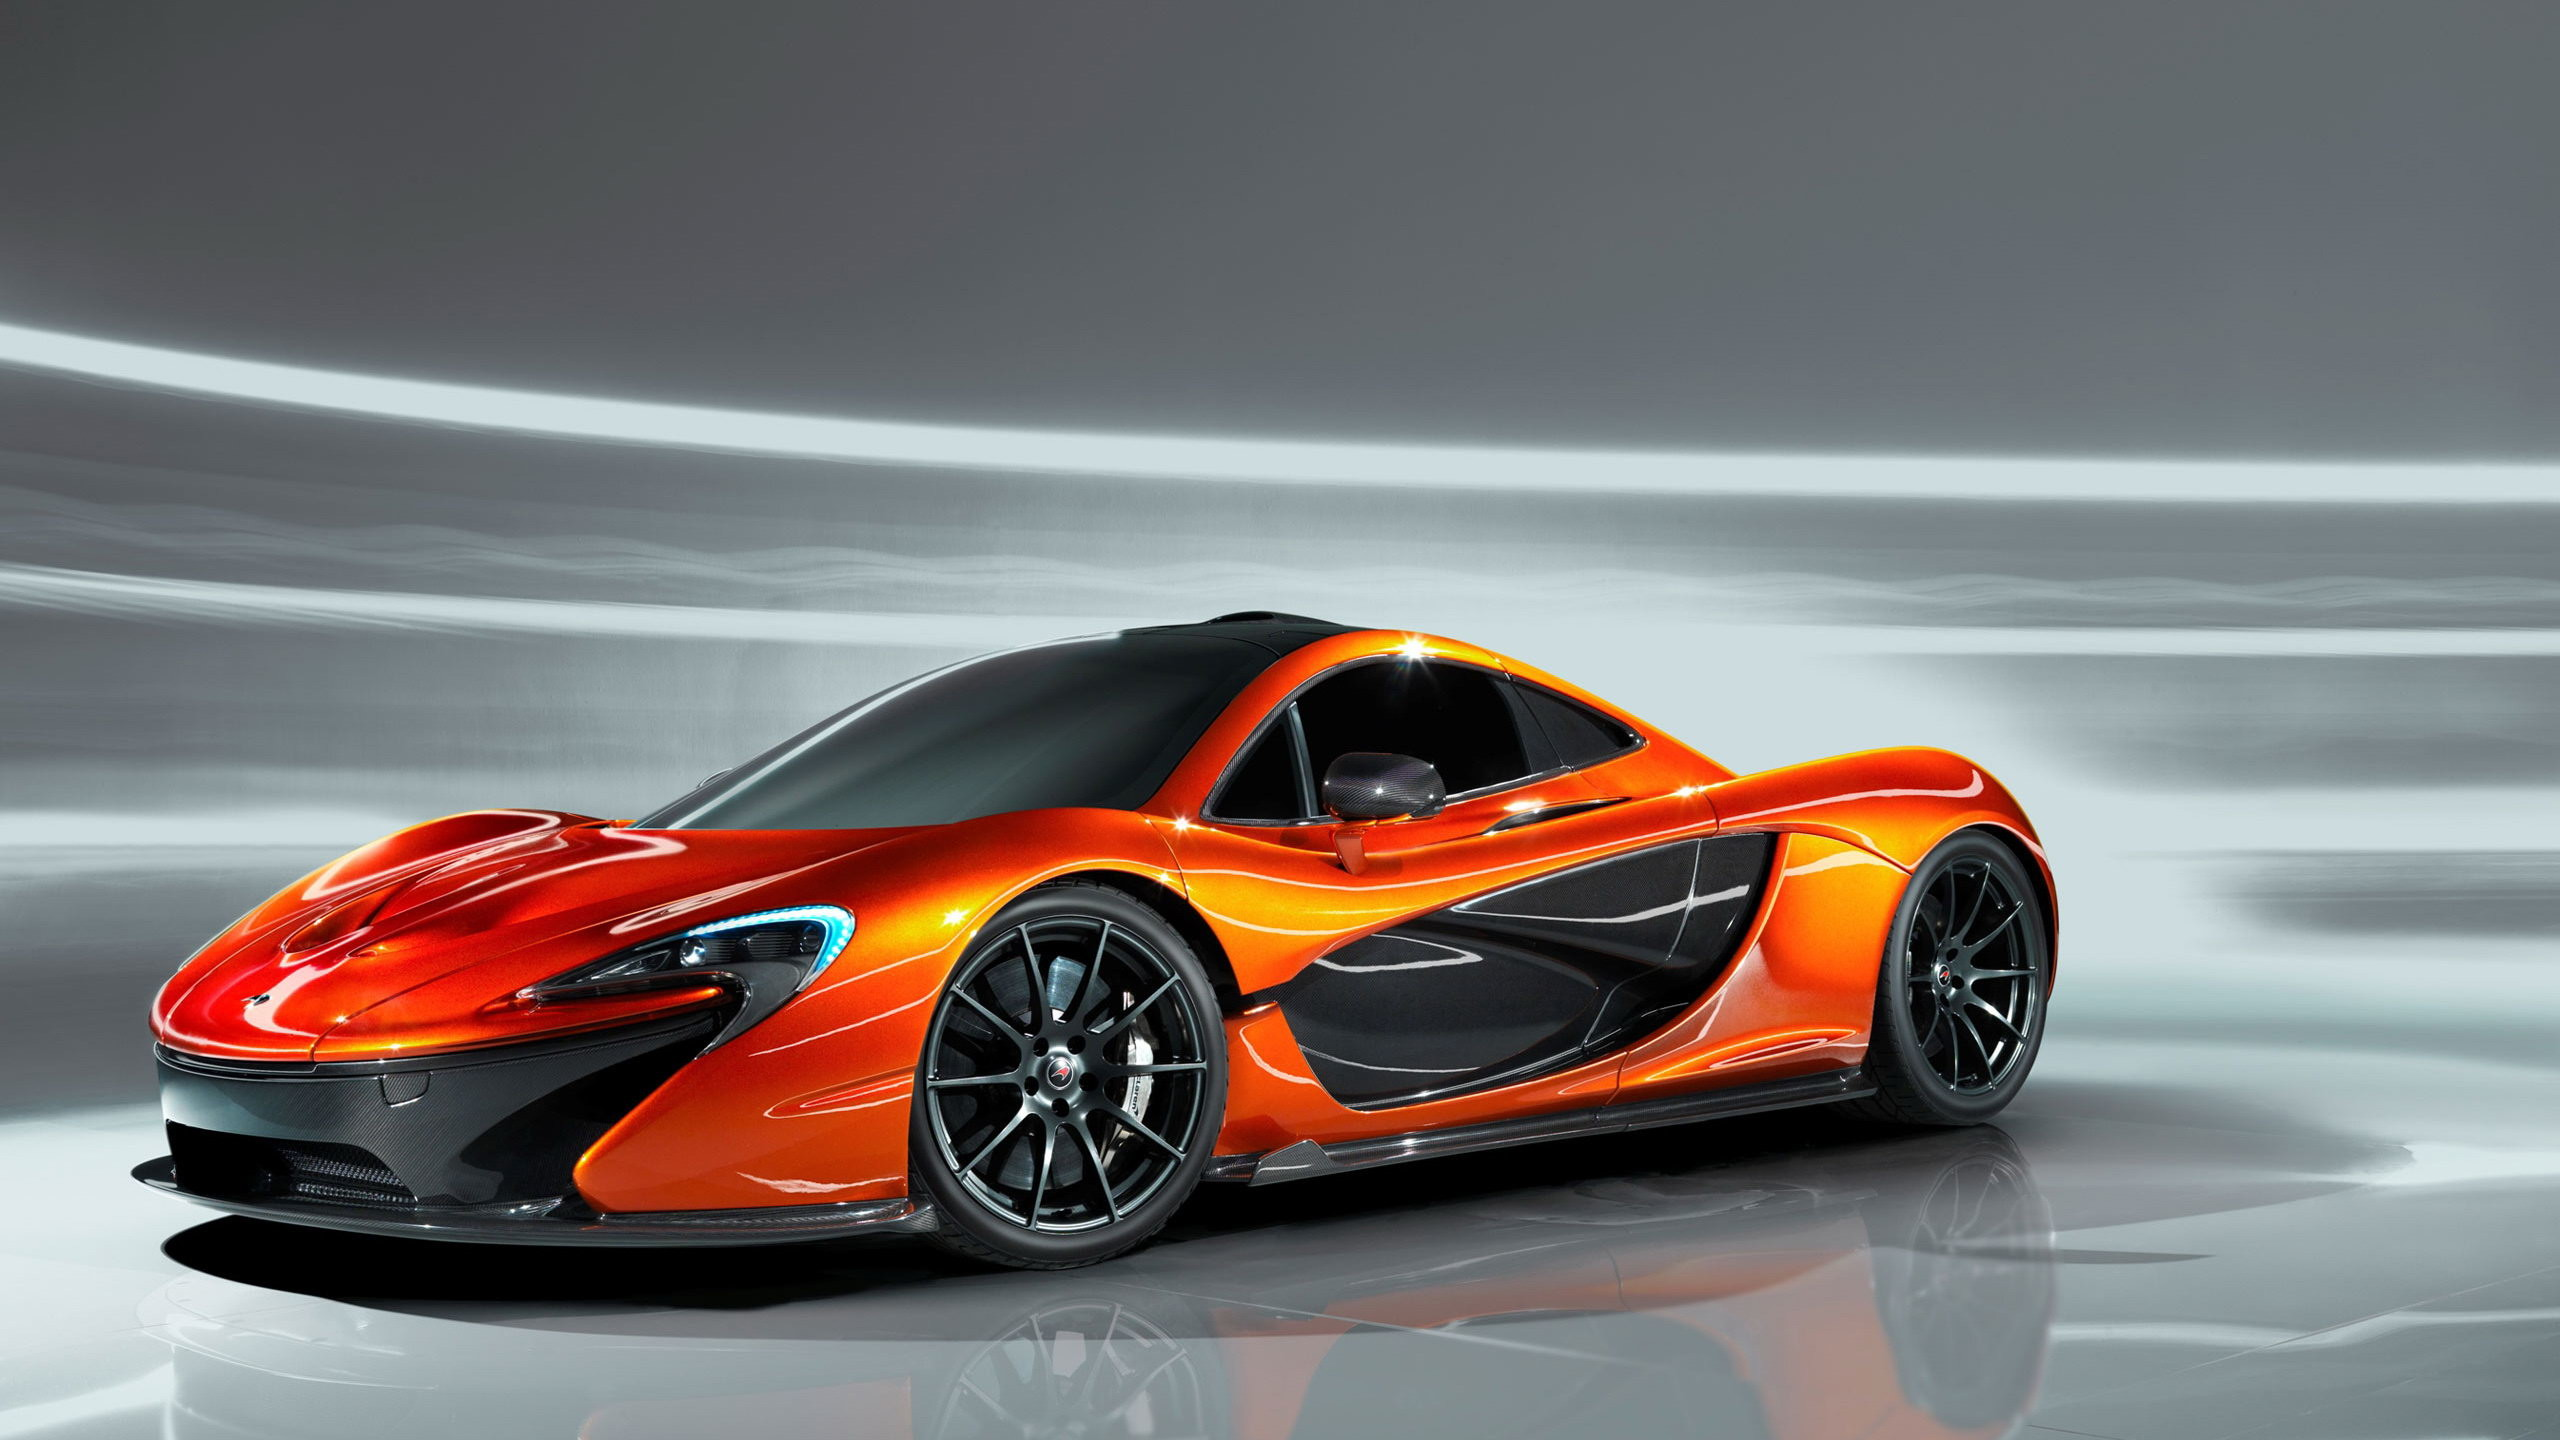 2560x1440 ... Collection of Cool Car Images Wallpaper on Spyder Wallpapers